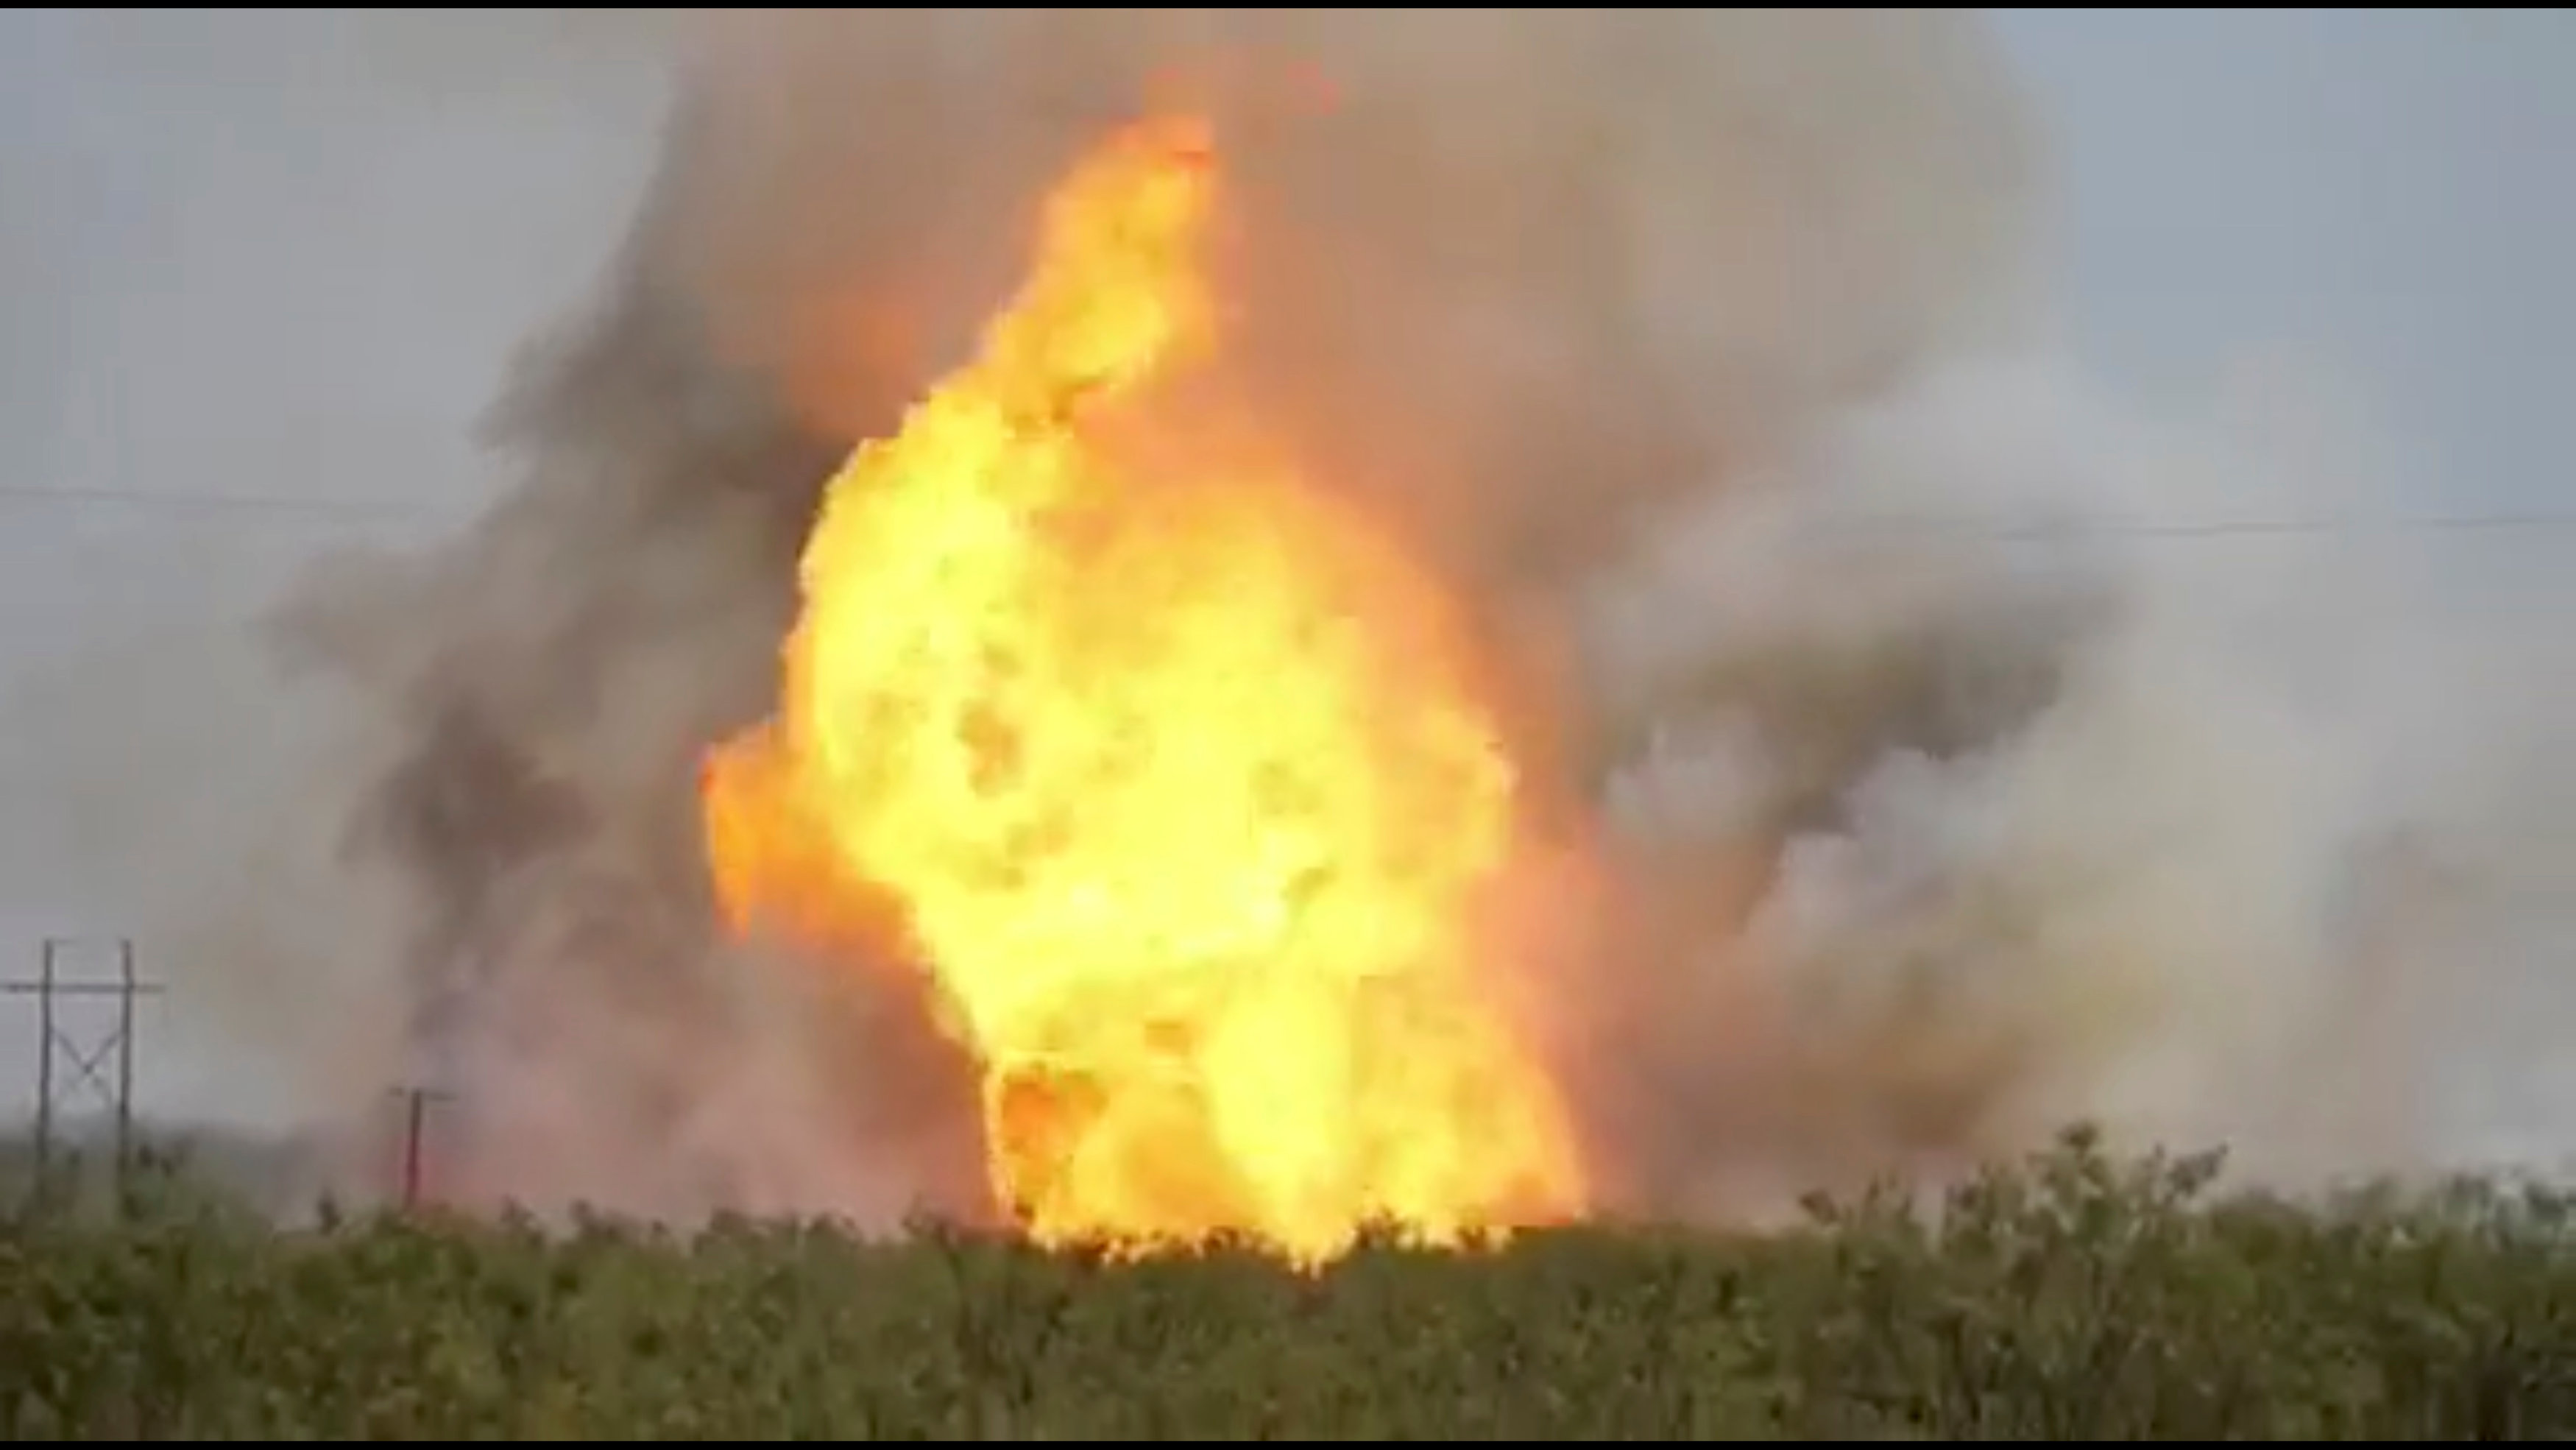 A pipeline explosion erupts in this image captured from video by a field worker in Midland County, the home to the Permian Basin and the largest U.S. oilfield, in Texas, U.S., August 1, 2018. Courtesy Marty Baeza/Handout via REUTERS